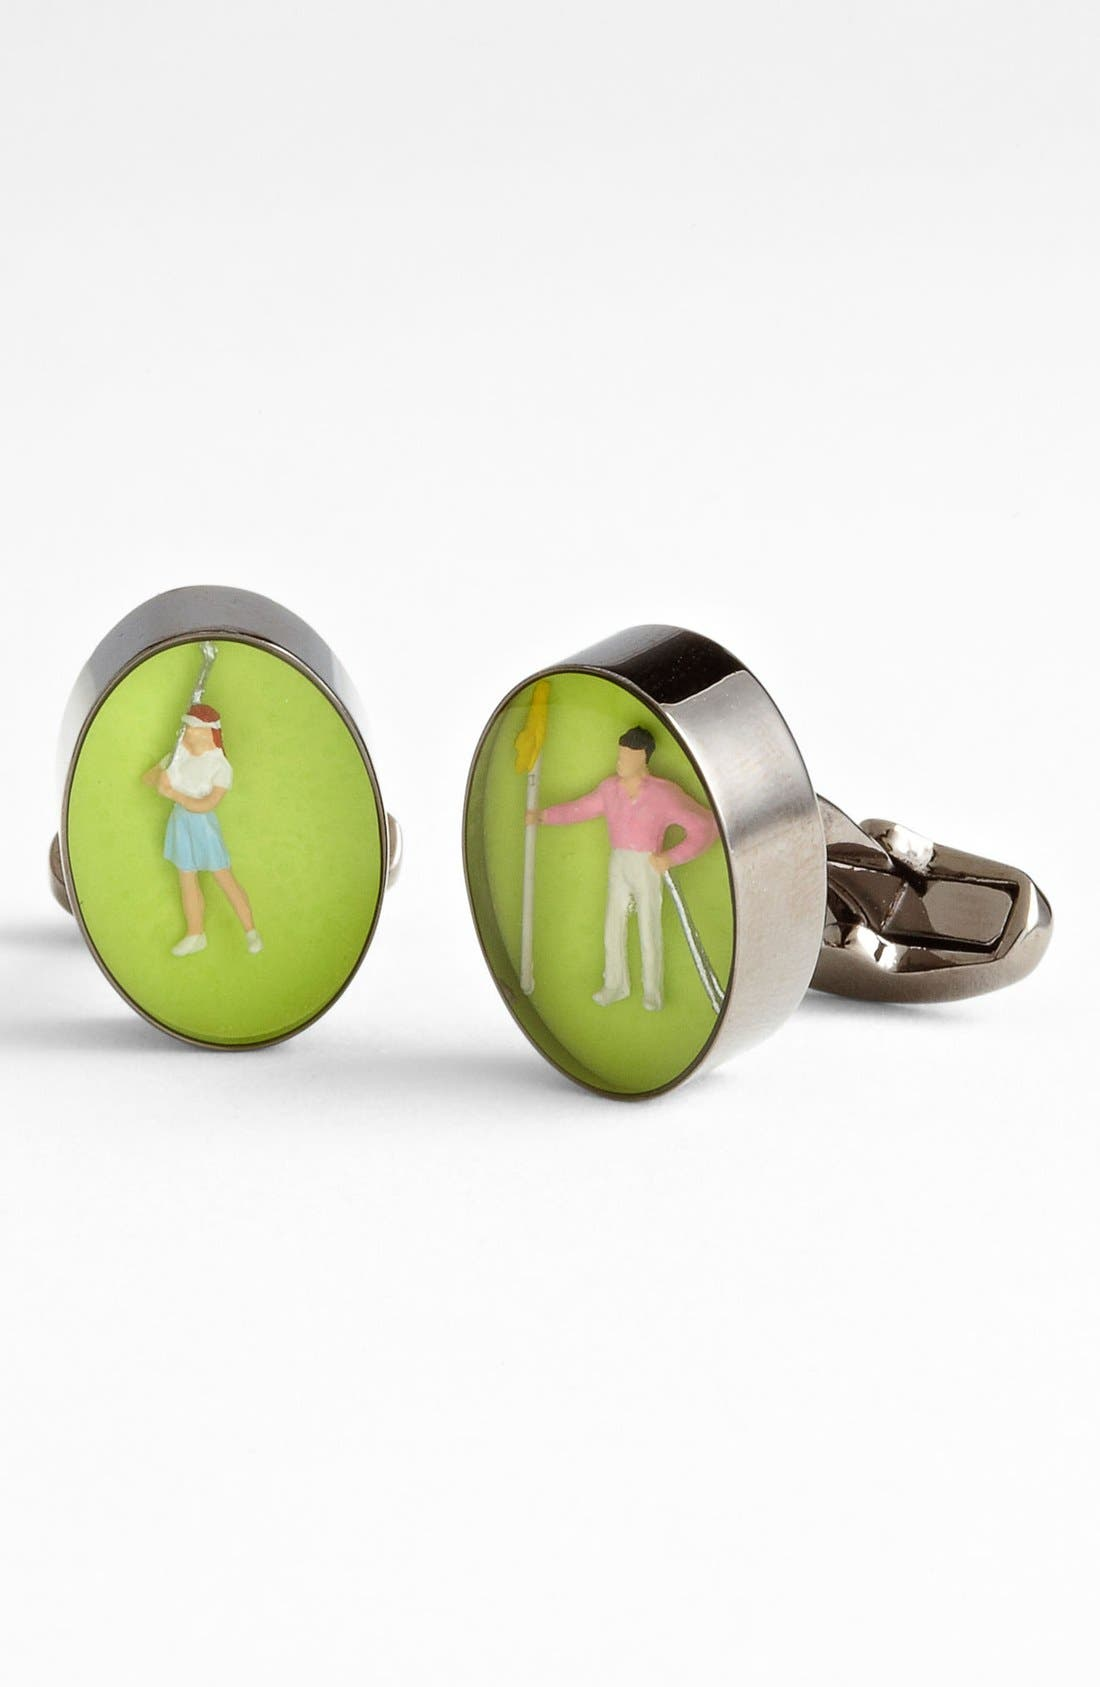 Alternate Image 1 Selected - Paul Smith Accessories 'Golfing Figure' Cuff Links